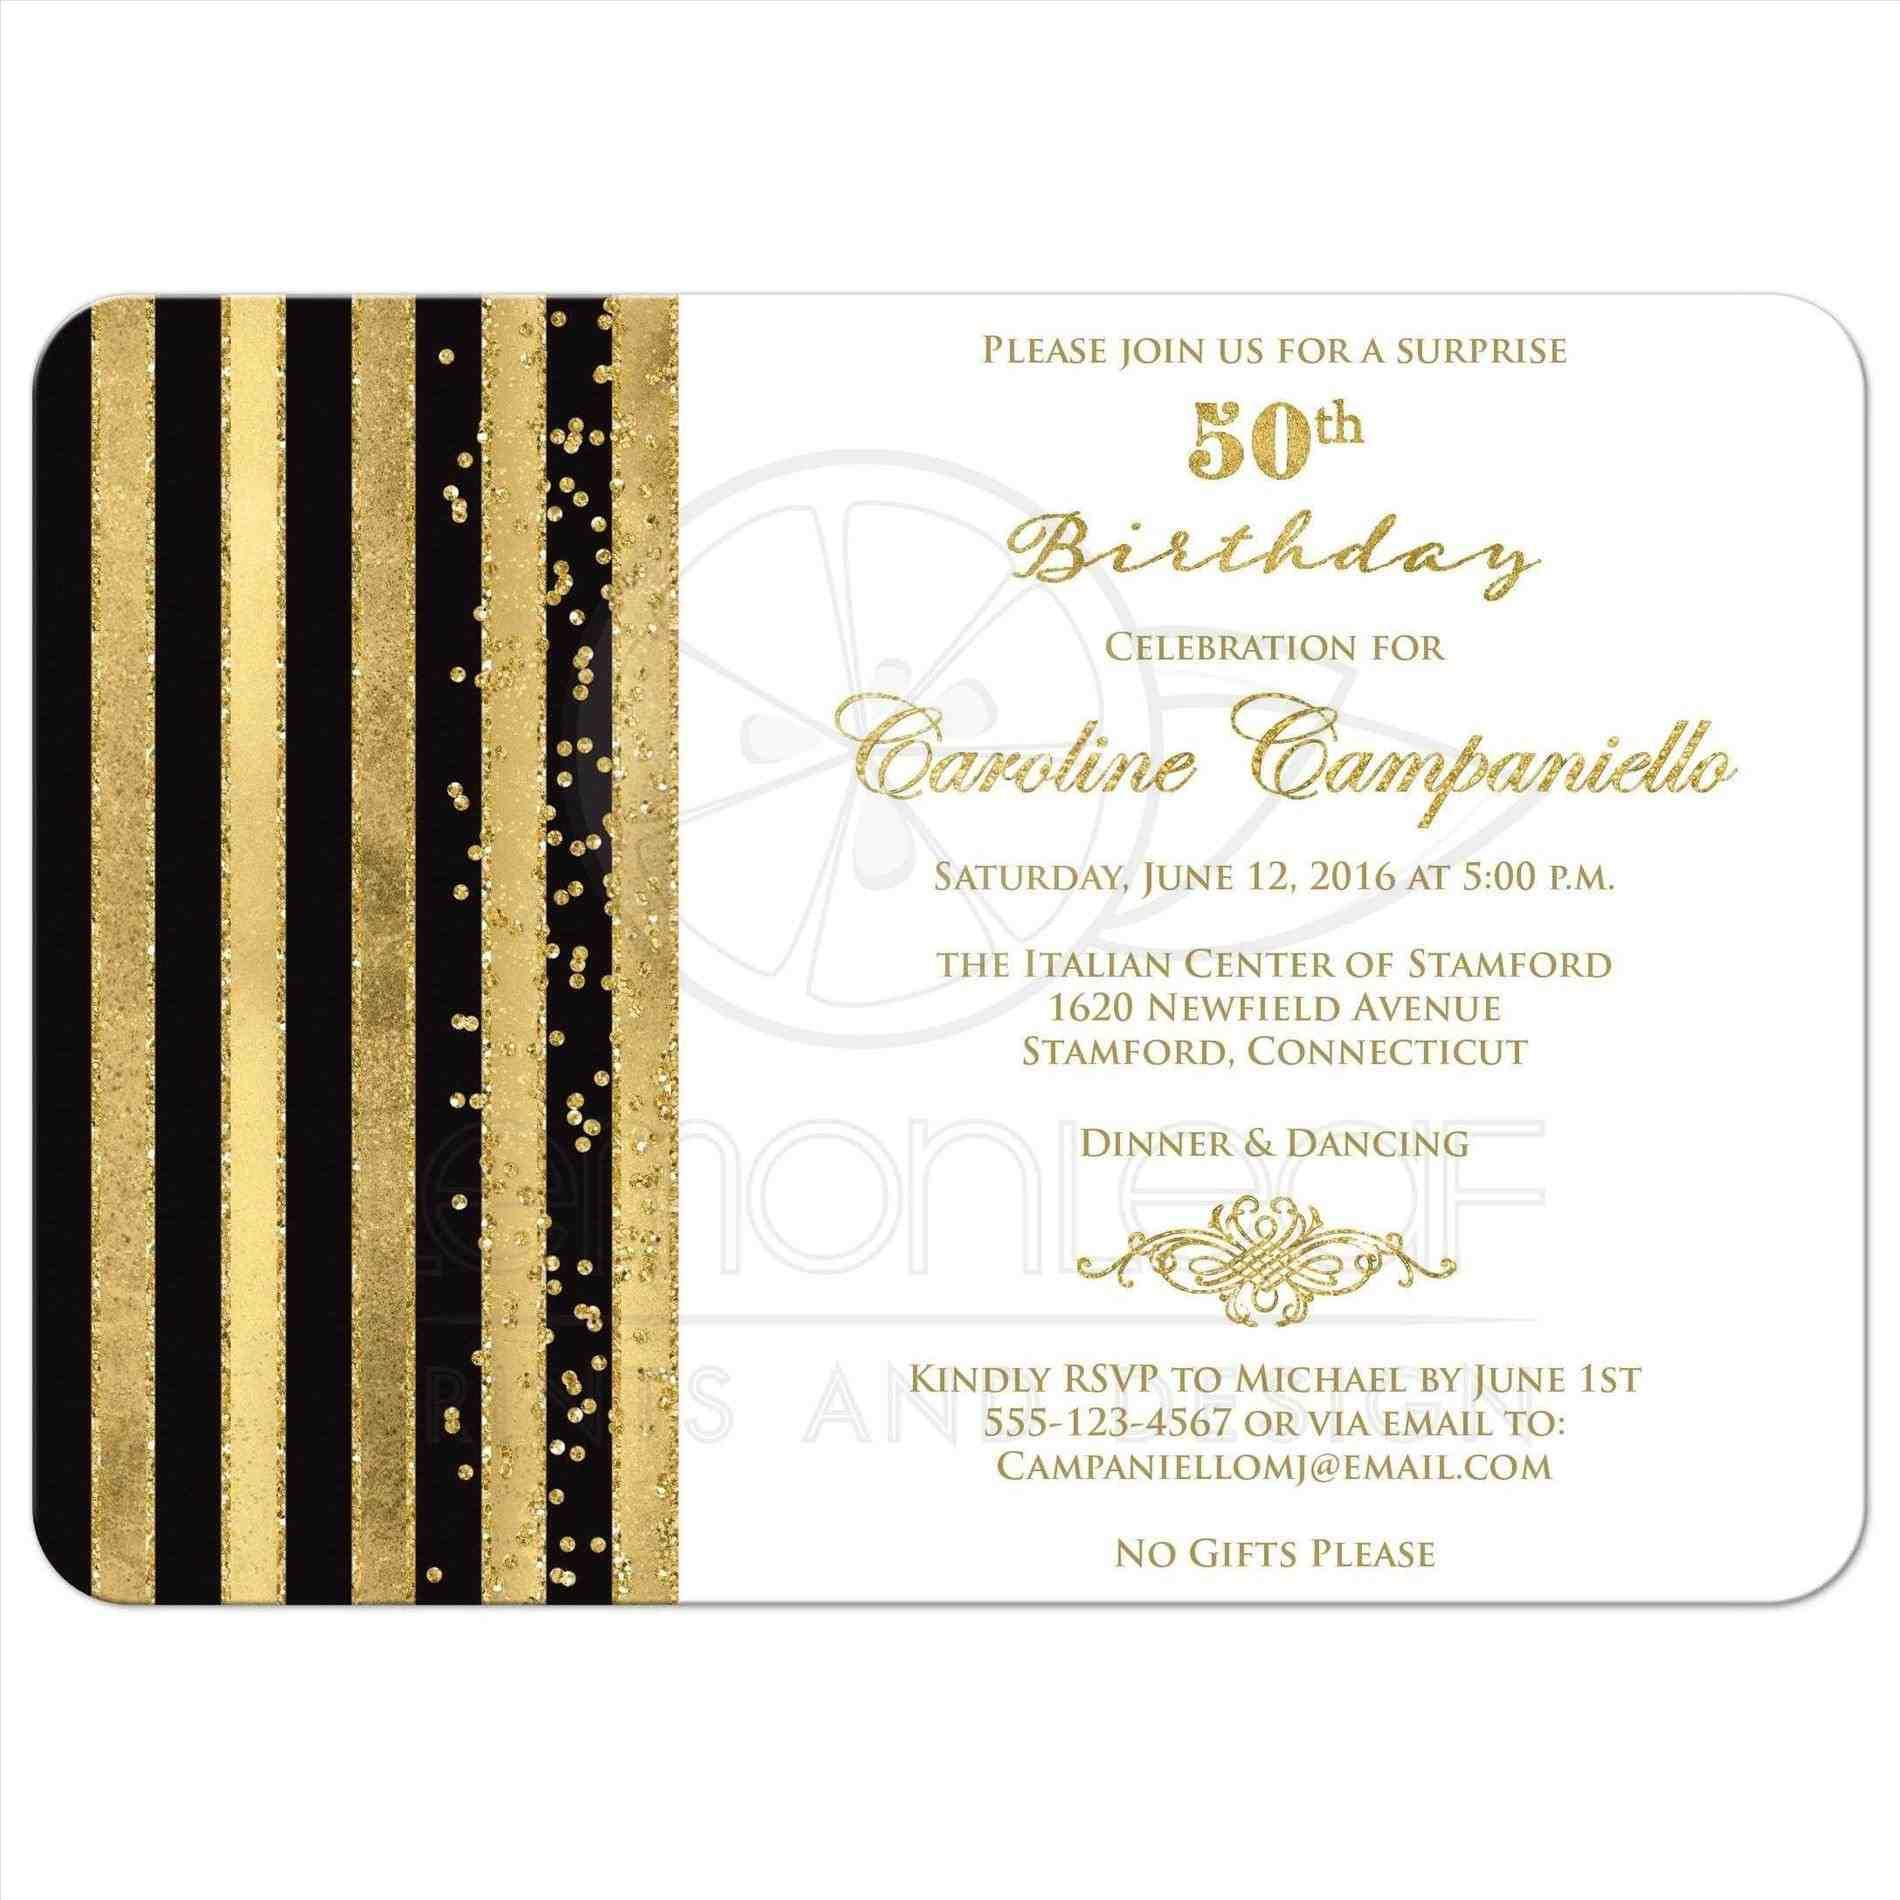 Full size of templatelovely 90th birthday invitations templates full size of templatelovely 90th birthday invitations templates free with photo hd nice looking filmwisefo